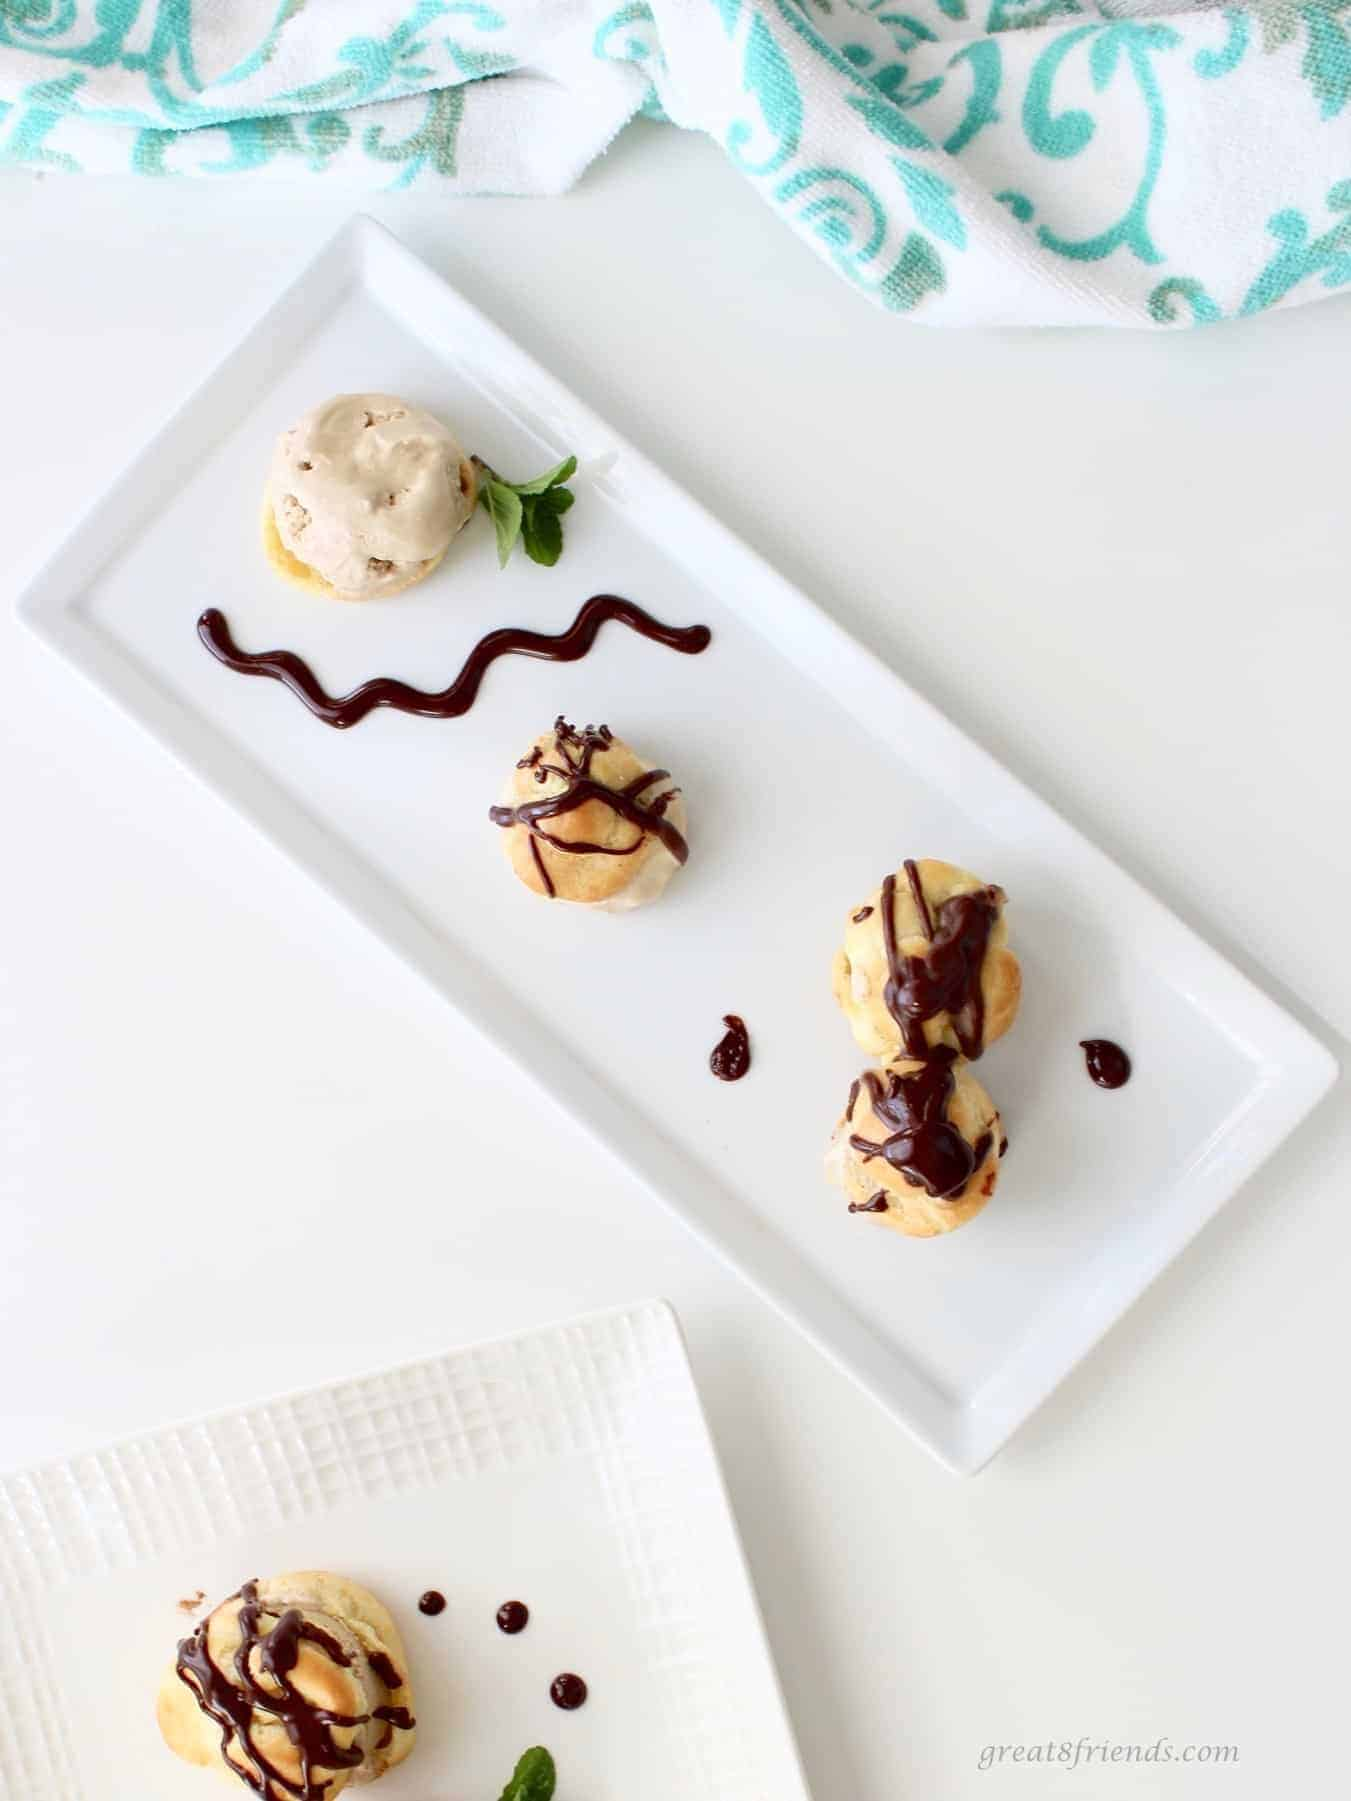 Profiteroles with coffee ice cream and chocolate sauce on a white rectangular plate.